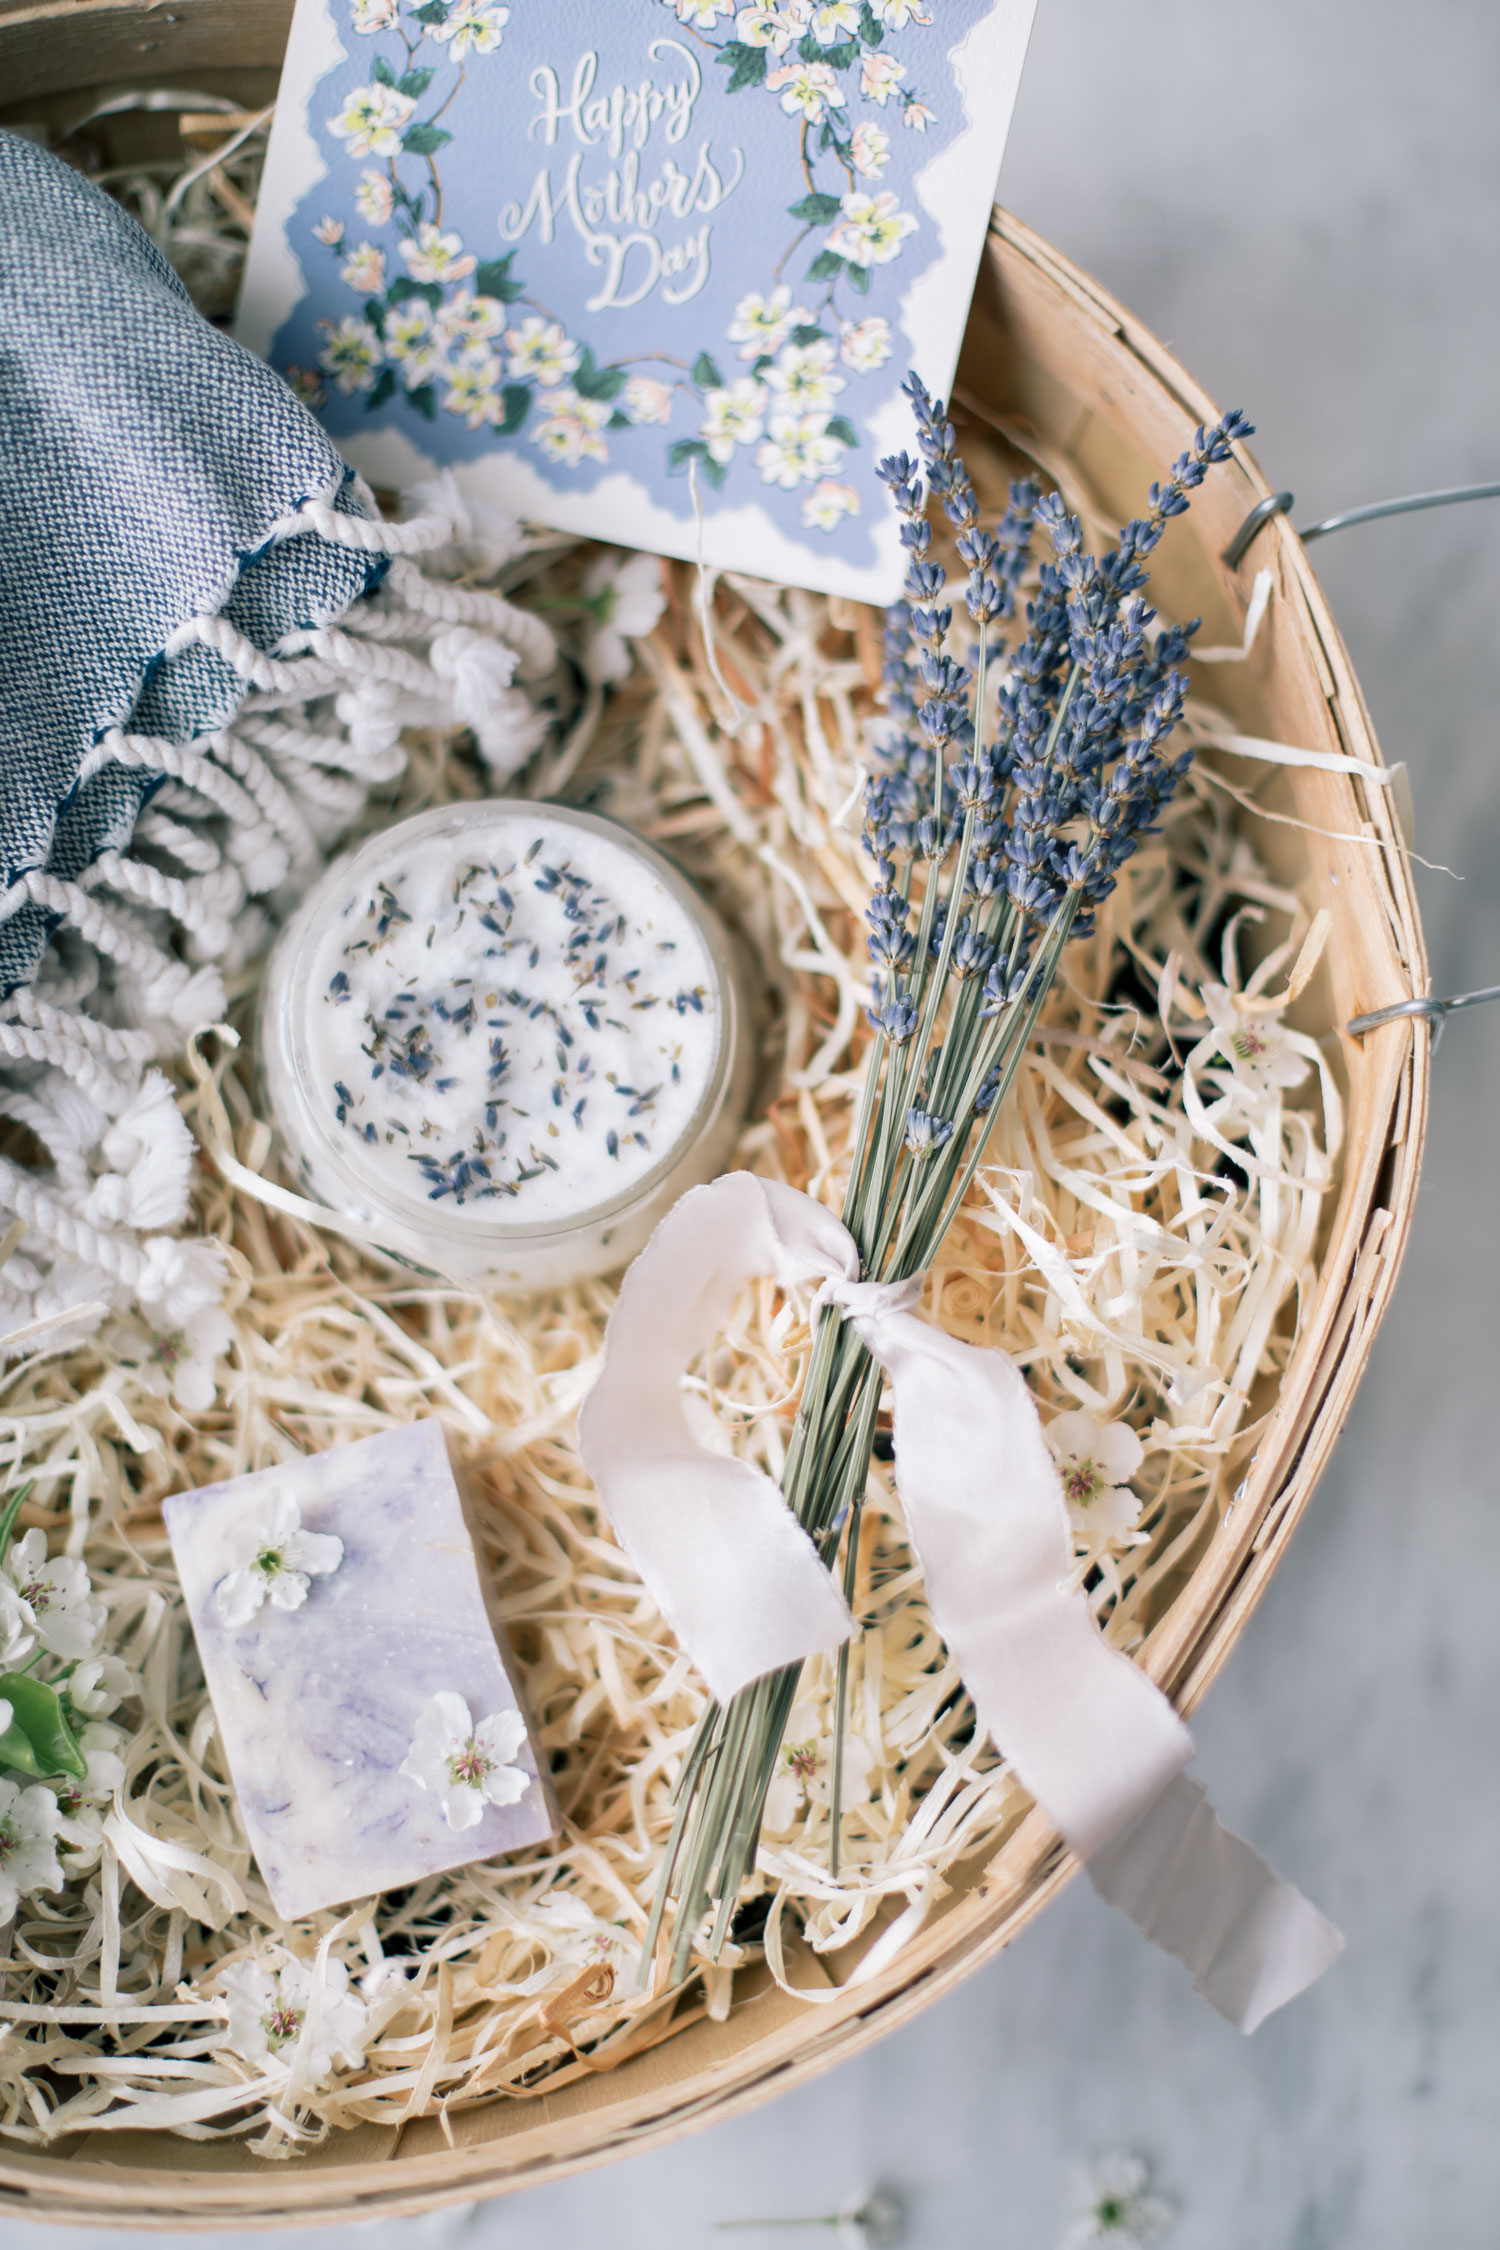 Mother S Day Lavender Basket Diy Lavender Body Scrub